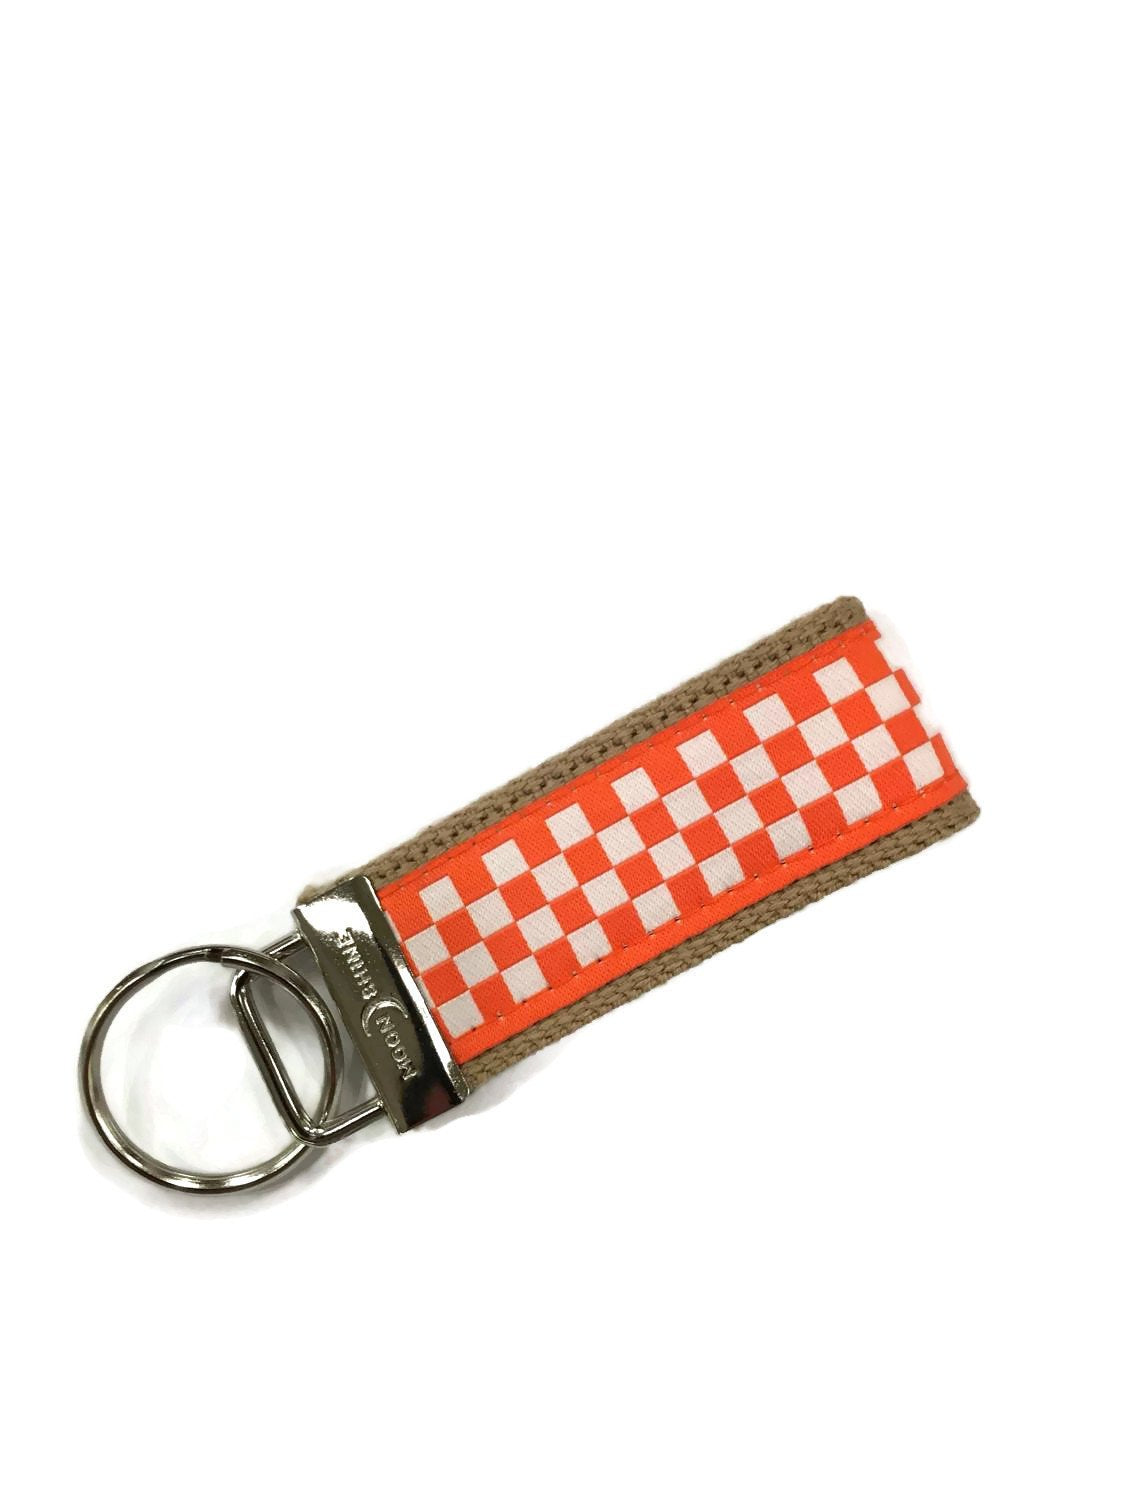 University of Tennessee  Go Vols licensed web key chain